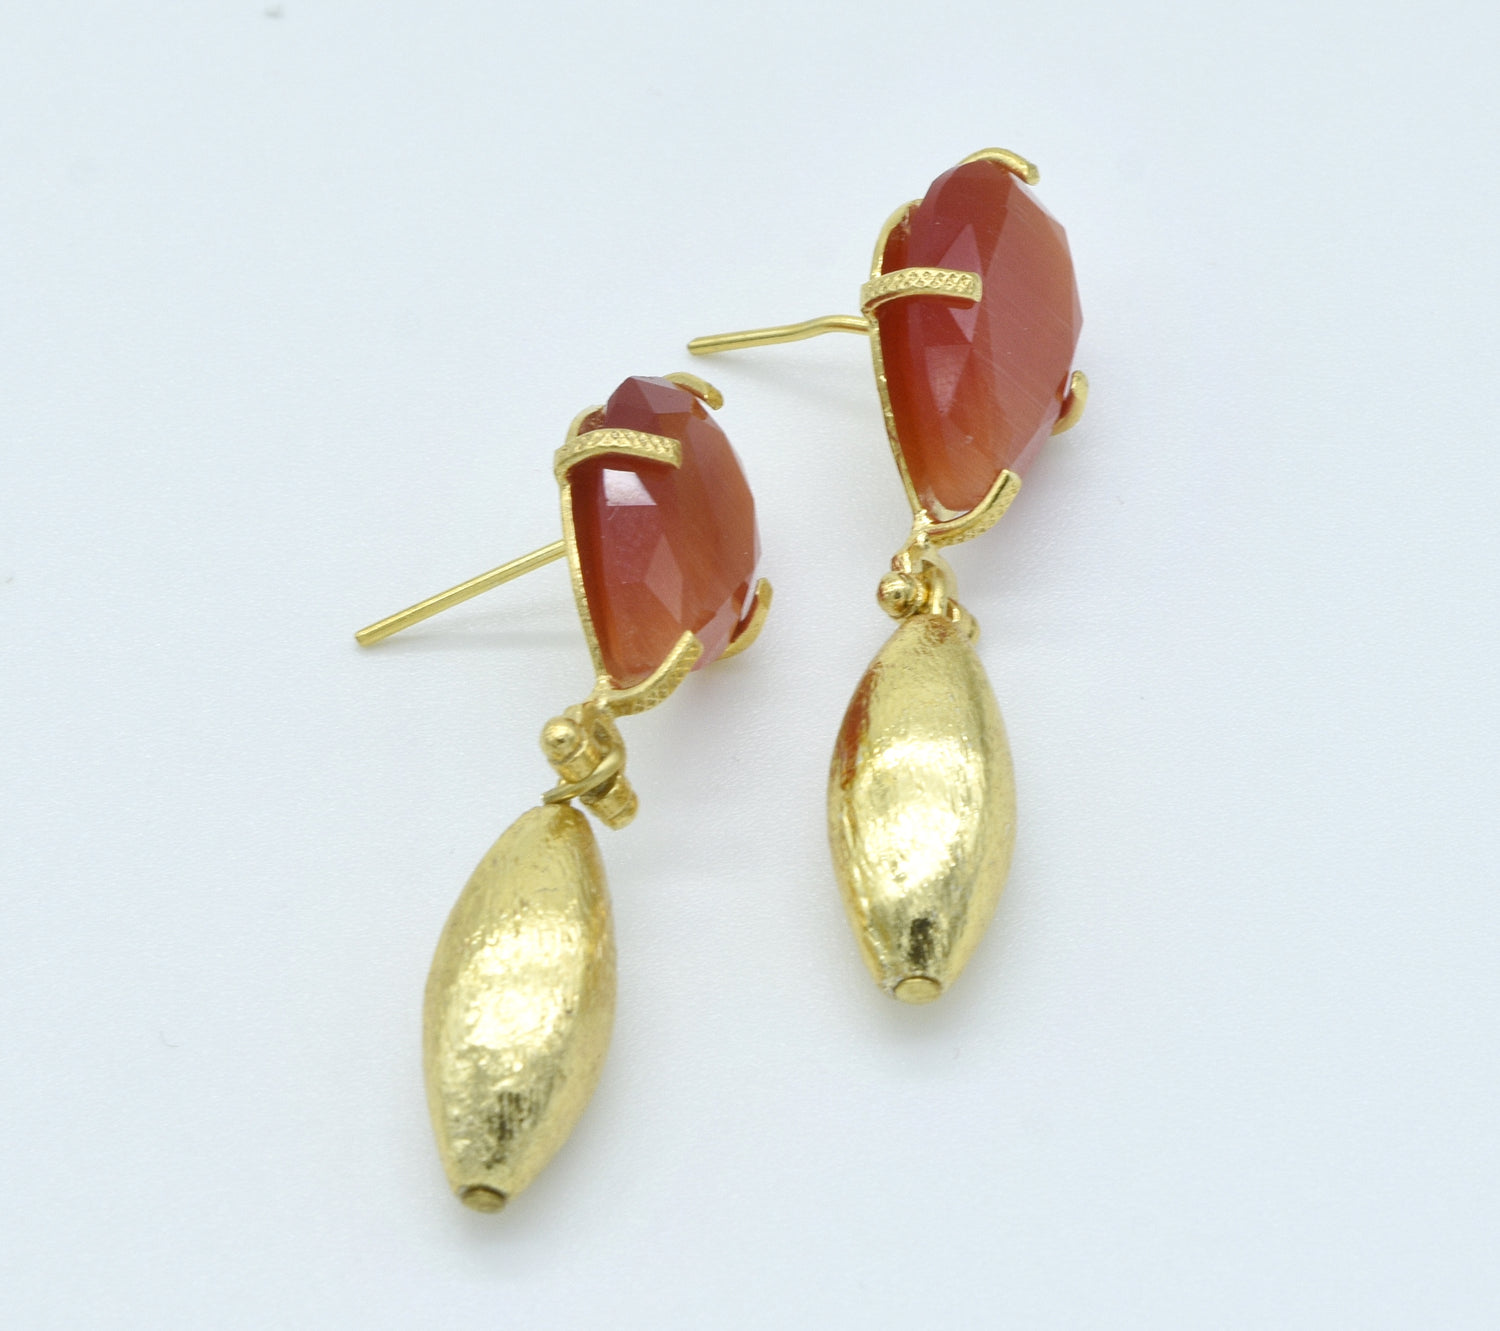 Aylas Cat Eye earrings - 21ct Gold plated semi precious gemstone - Handmade in Ottoman Style by Artisan